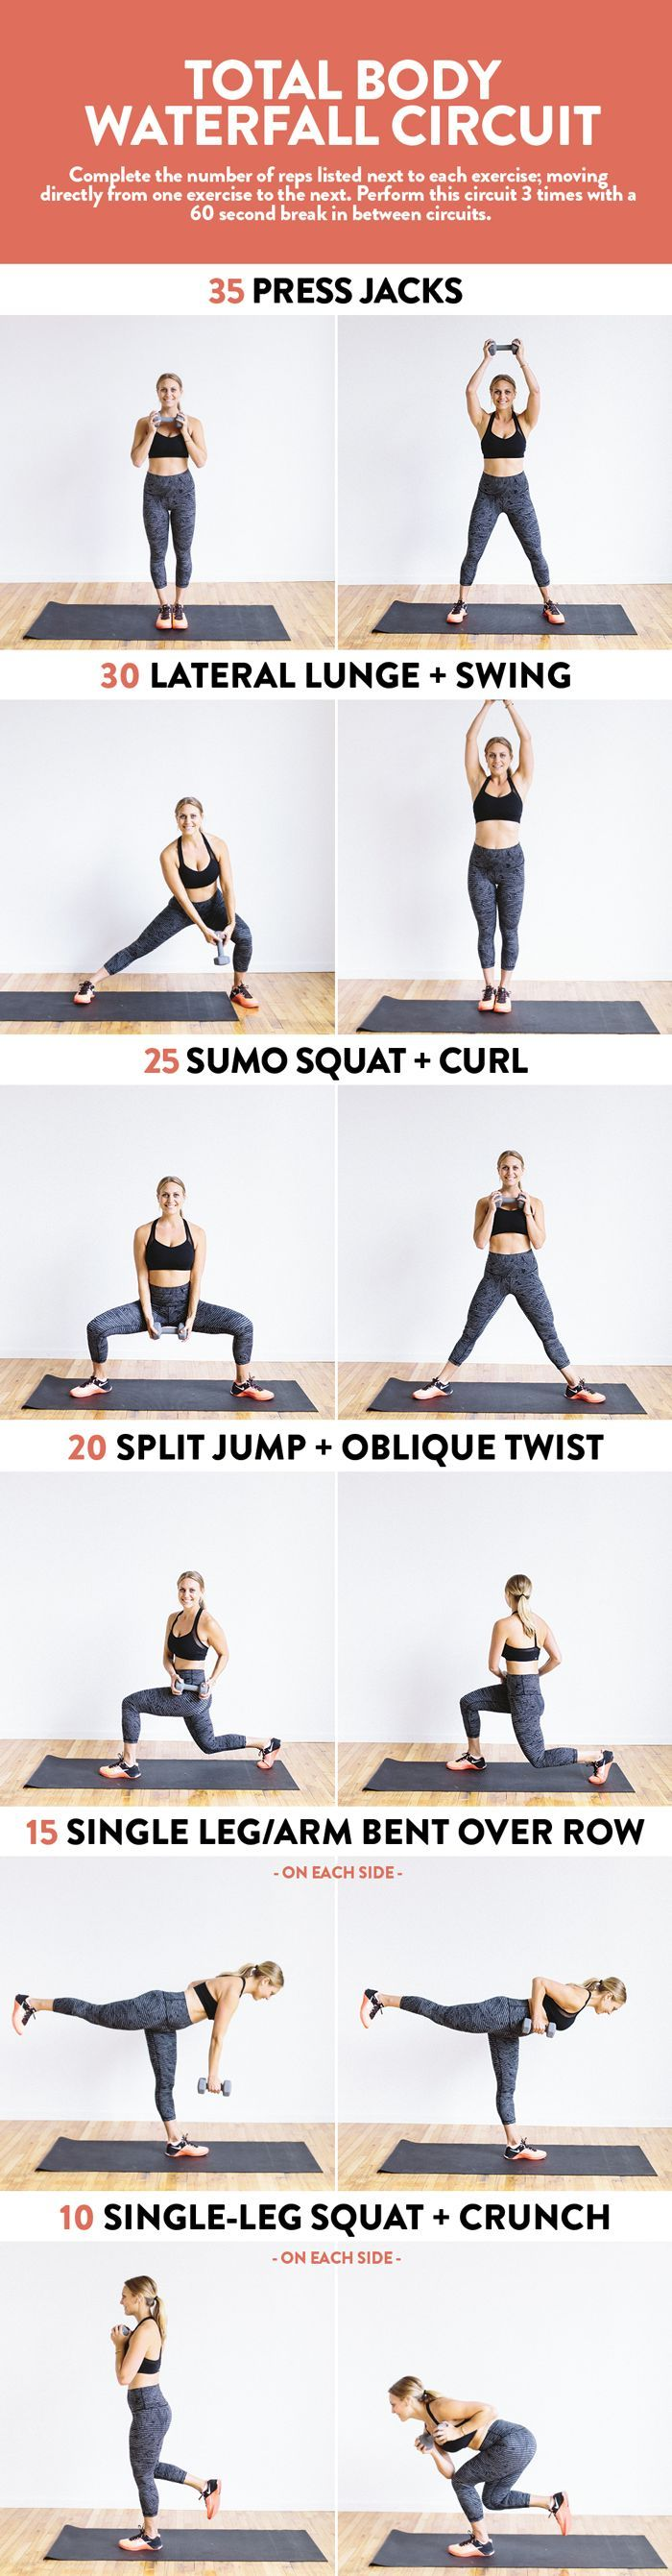 Do that complete physique waterfall circuit with simply 1 dumbbell for a full-physique streng...